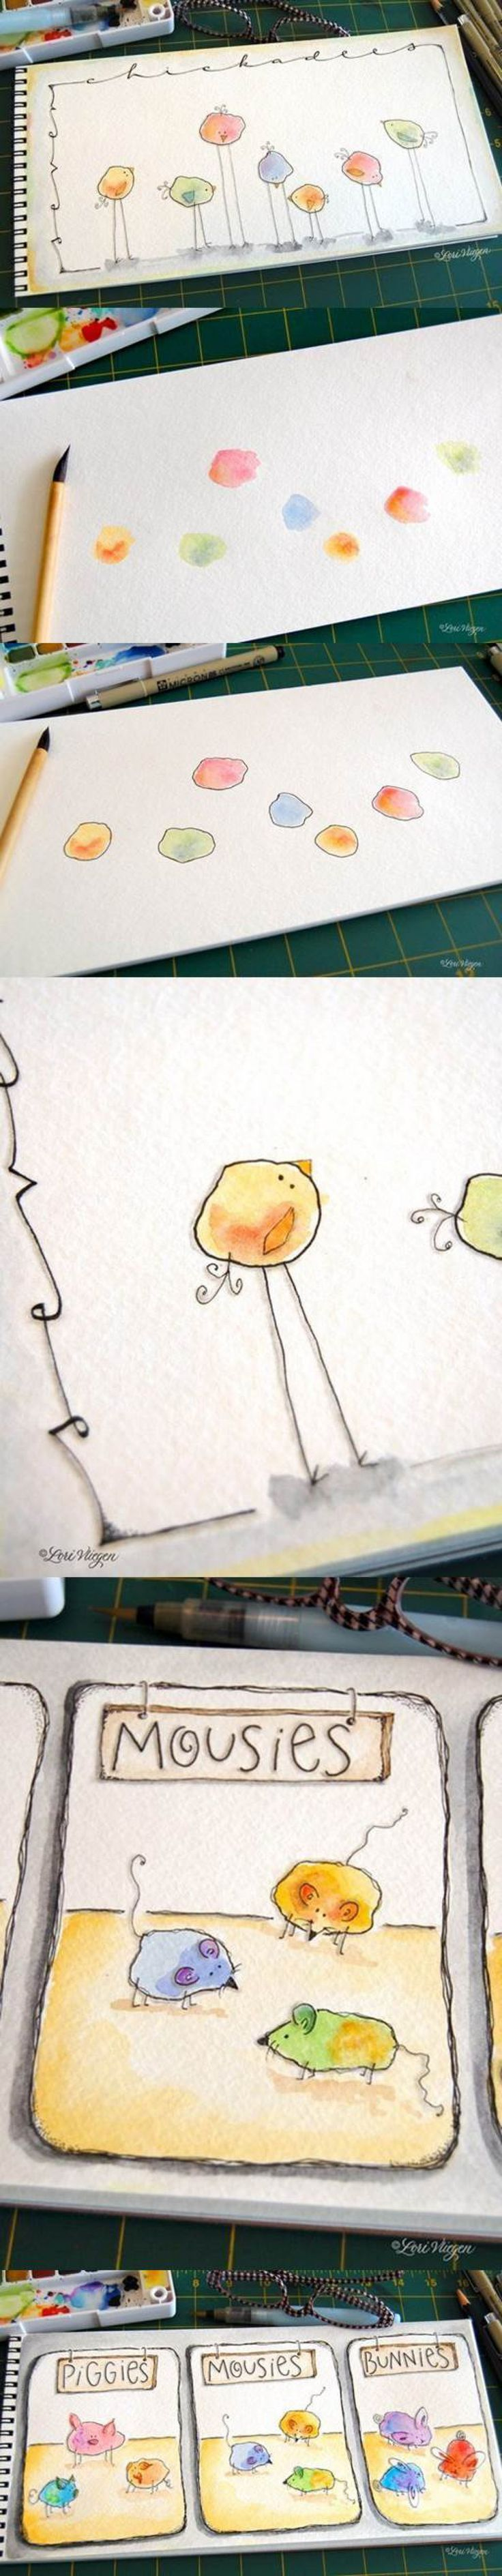 So cute!! Watercolor cartoon animals created with simple paint splotches/shapes.